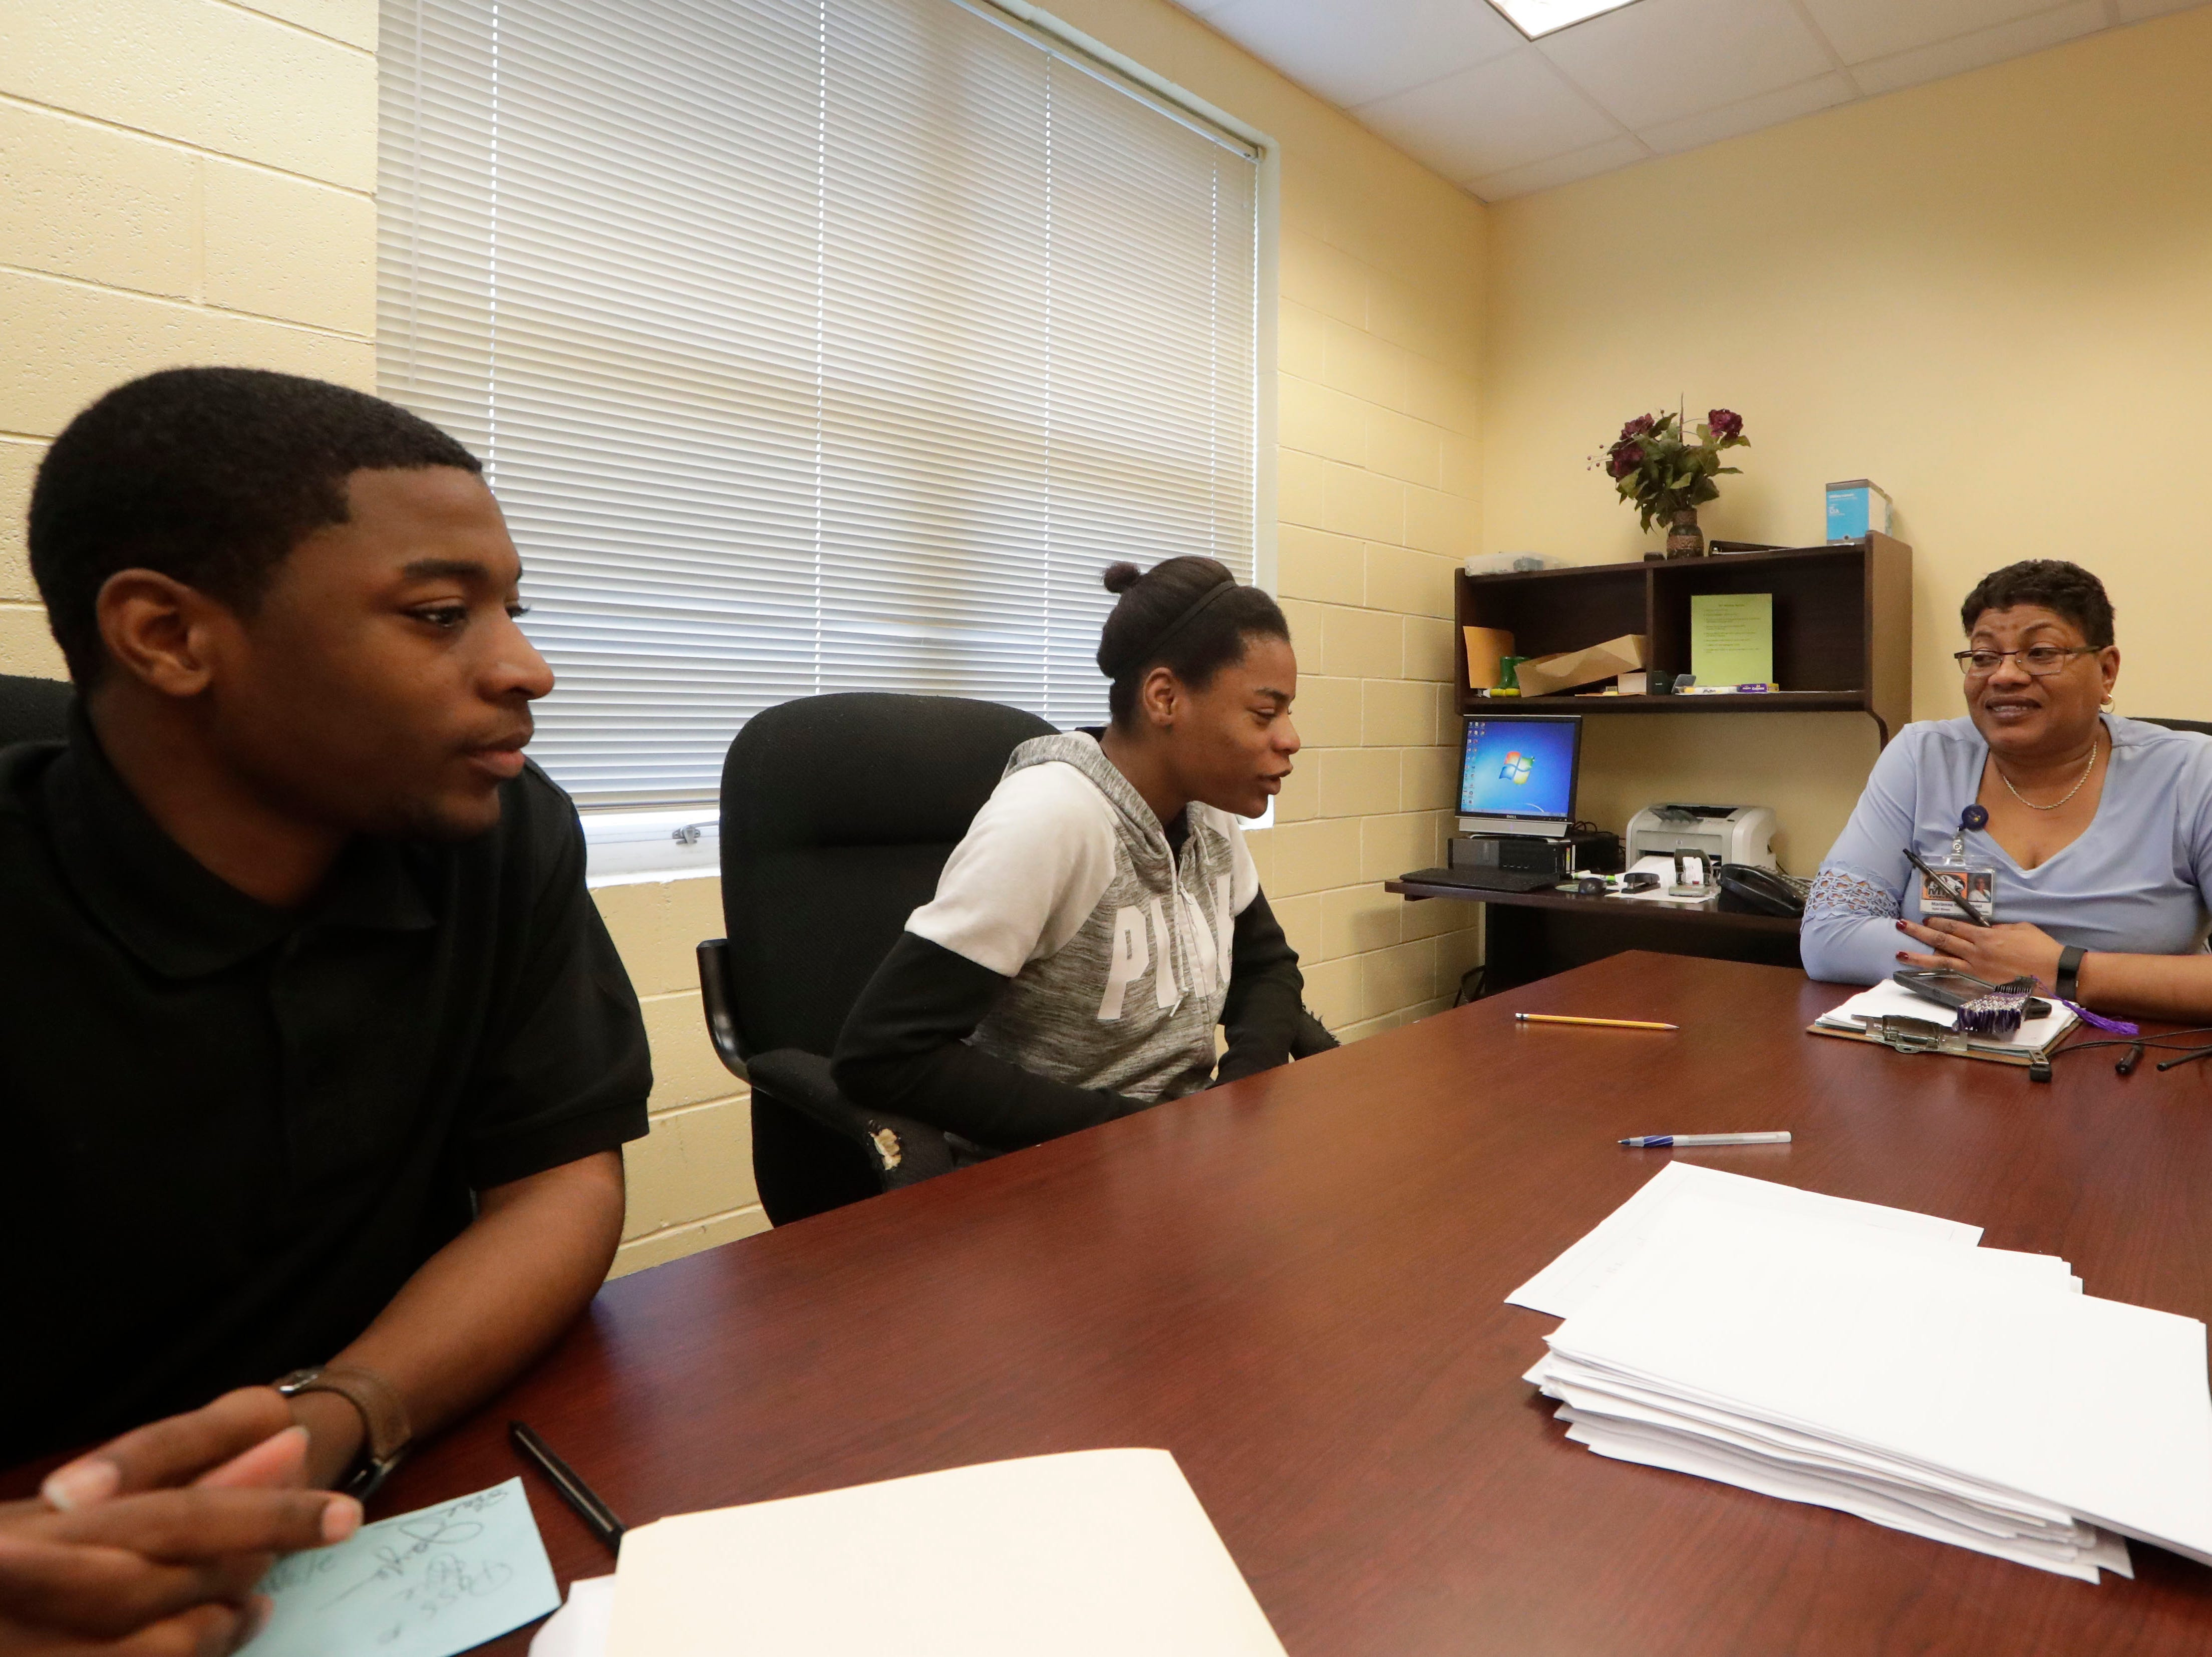 Jay-Lon McGriff, left, his twin sister, Jay-Hda McGriff, center, and Marianna High School Assistant Principal Sybil Rivers talk about the challenges the twins have faced since Hurricane Michael and how they kept a positive attitude, even after losing their mother in January, Thursday Feb. 7, 2019.